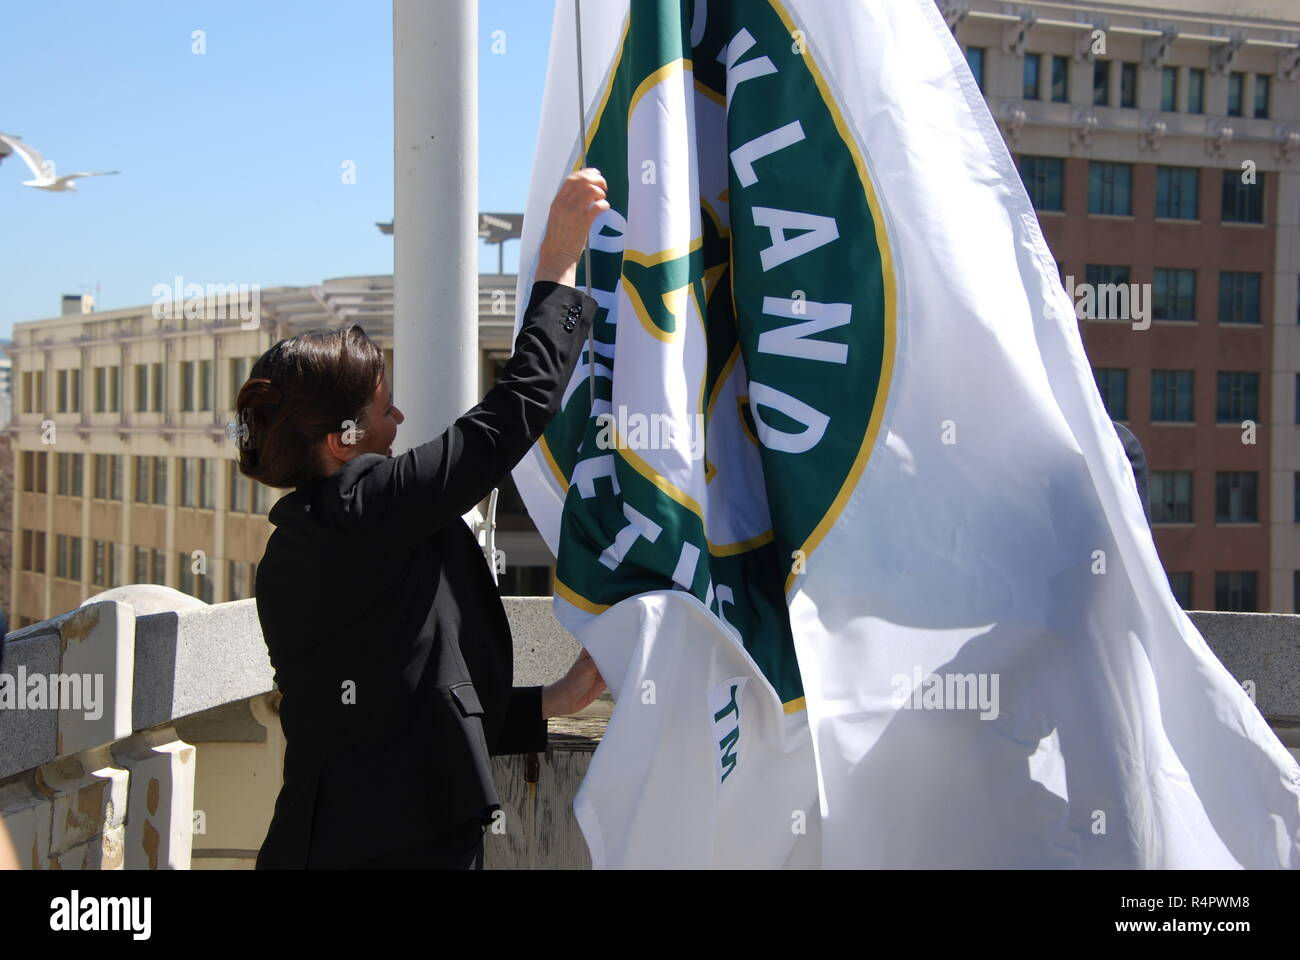 Oakland Mayor Libby Schaaf raises an Oakland A's flag on the roof of Oakland City Hall ahead of the 2018 Major League Baseball season. - Stock Image